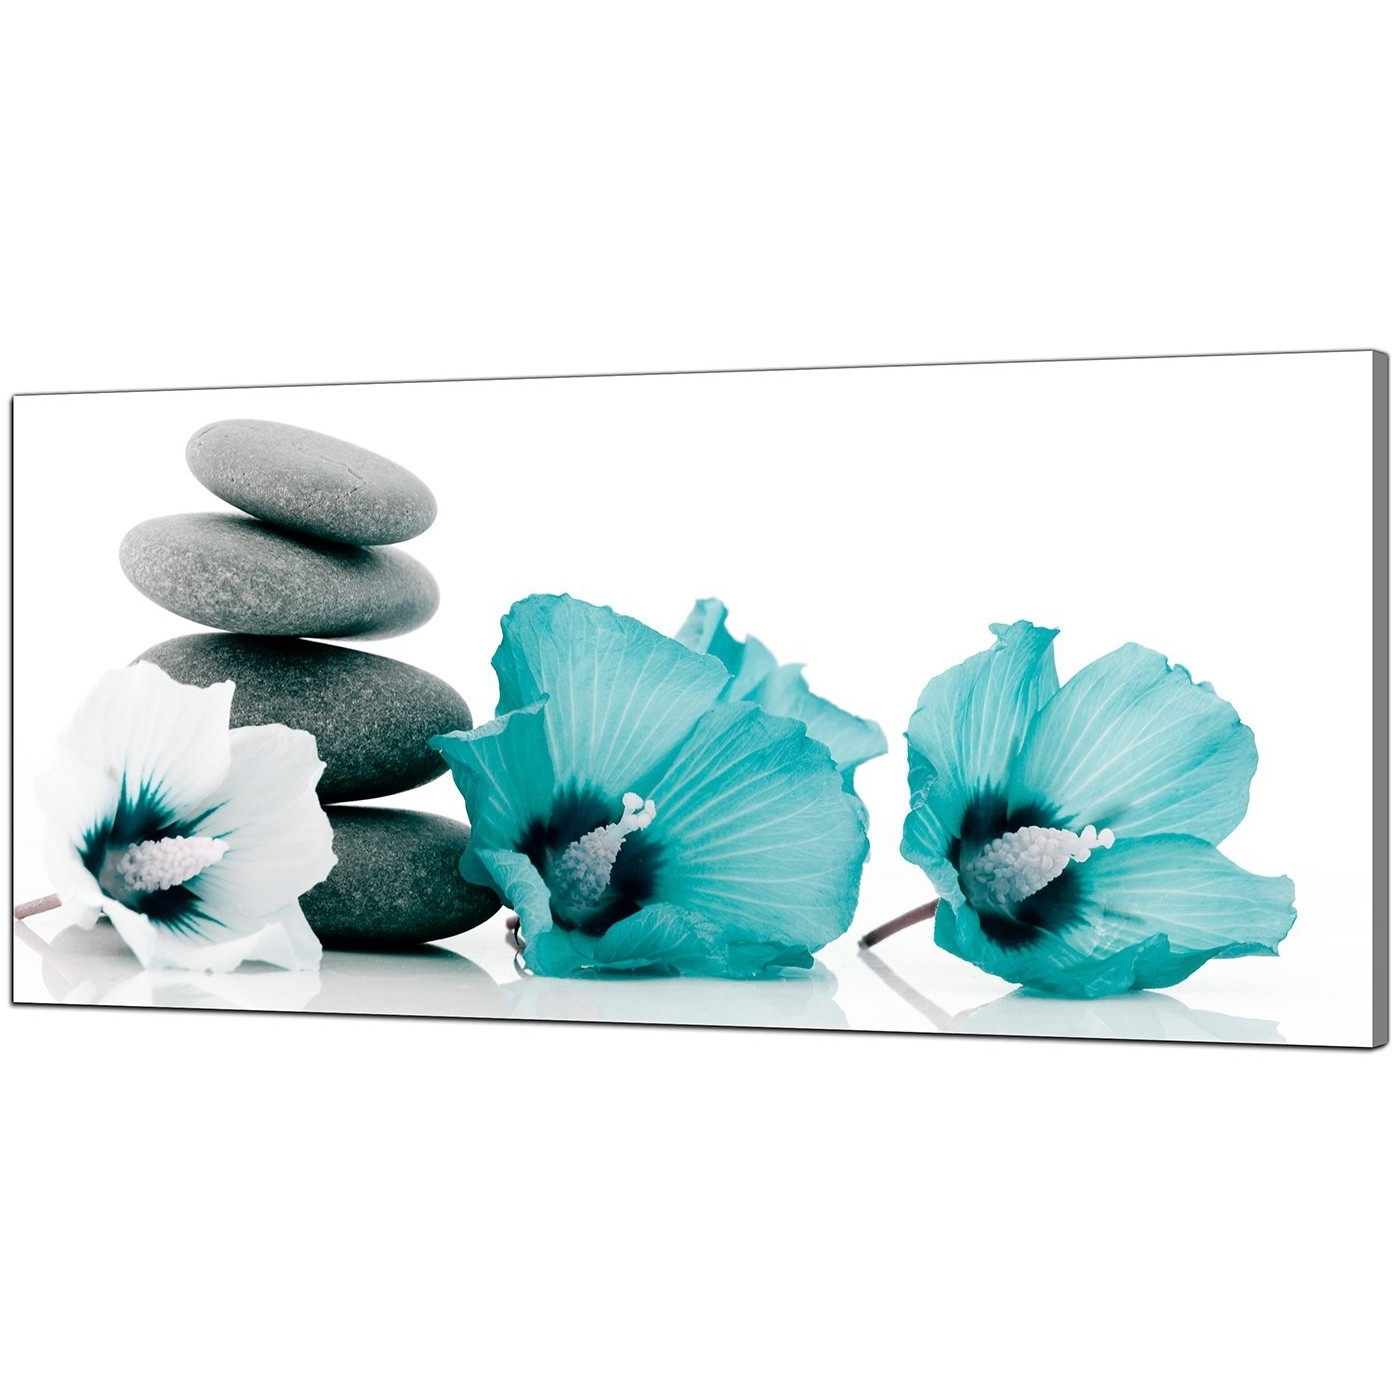 Most Up To Date Teal Wall Art Uk For Large Teal And Grey Canvas Pictures Of Flowers And Pebbles (View 6 of 15)